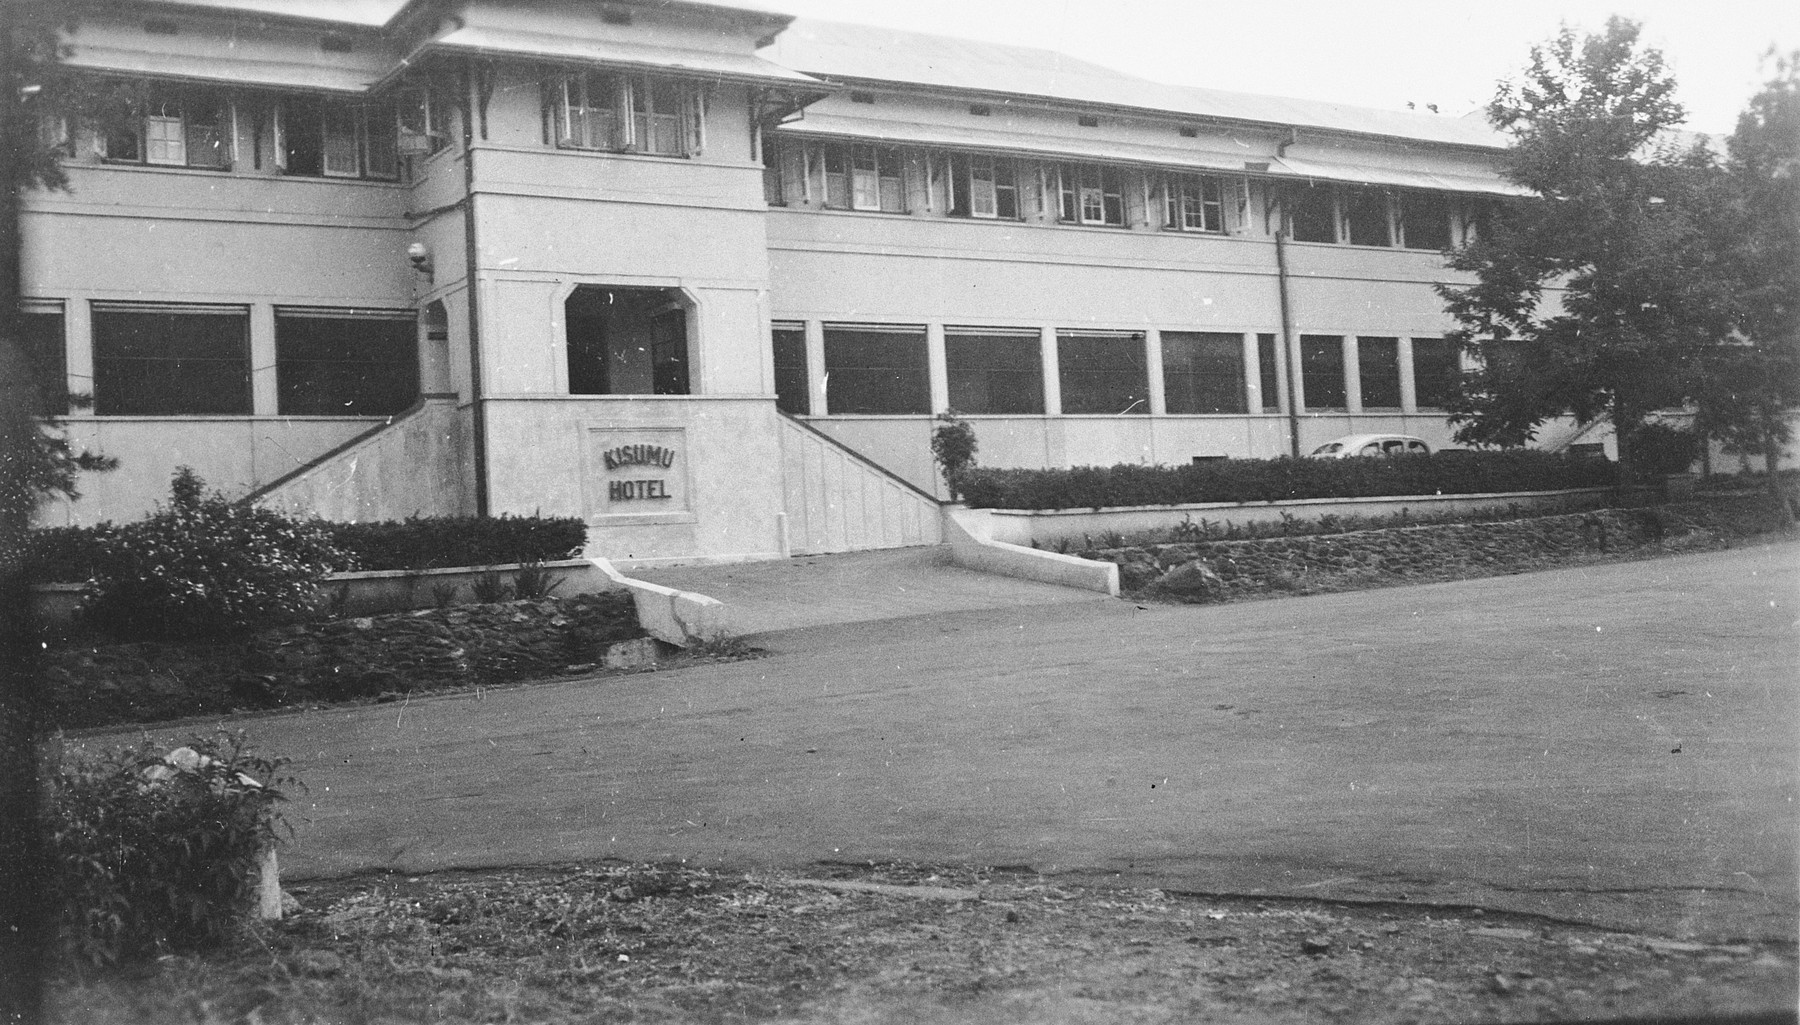 Exterior view of the Kisumu Hotel in Kisumu, Kenya where Jewish refugees Ruth and Heinrich Weyl worked for five years.